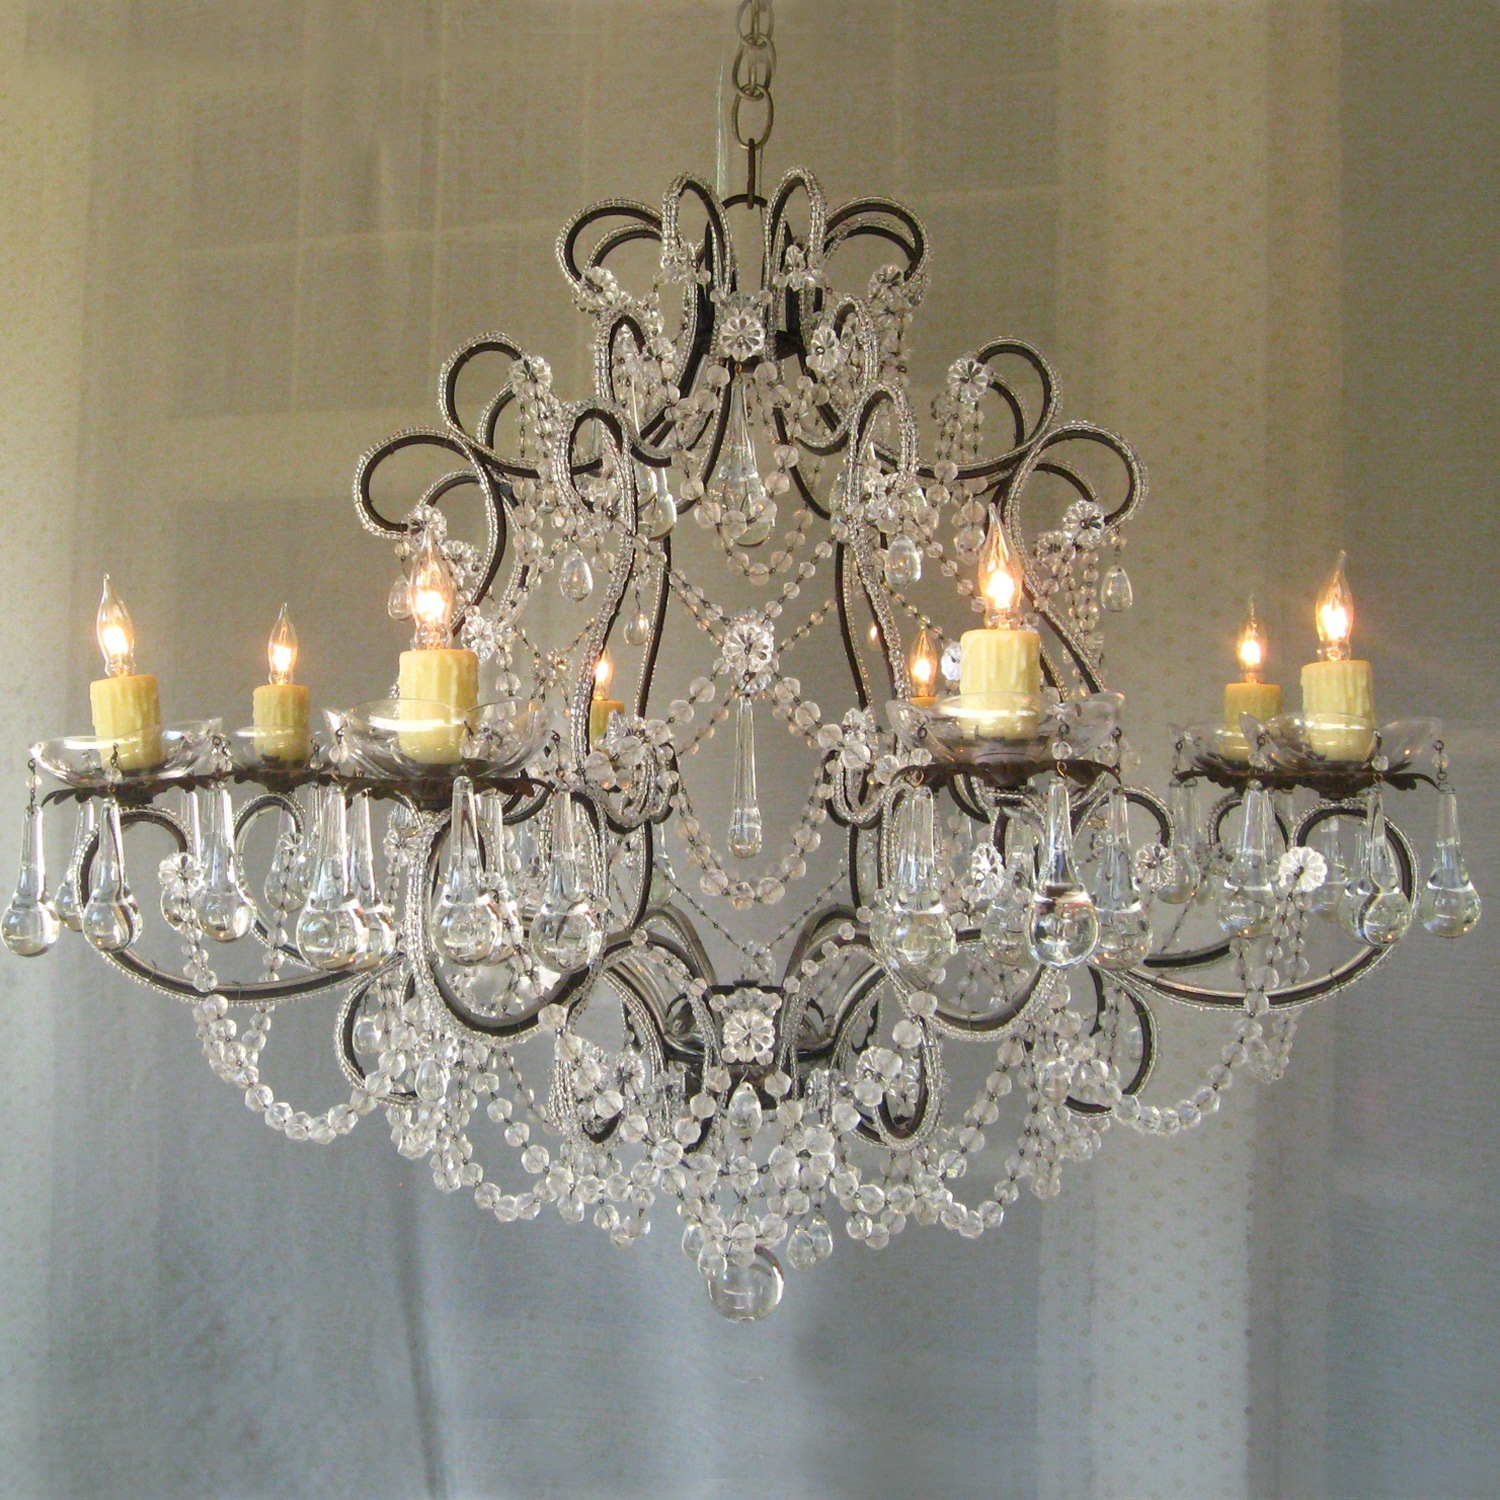 Great Shab Chic Chandelier About Small Home Decor Inspiration For Small Shabby Chic Chandelier (#8 of 12)